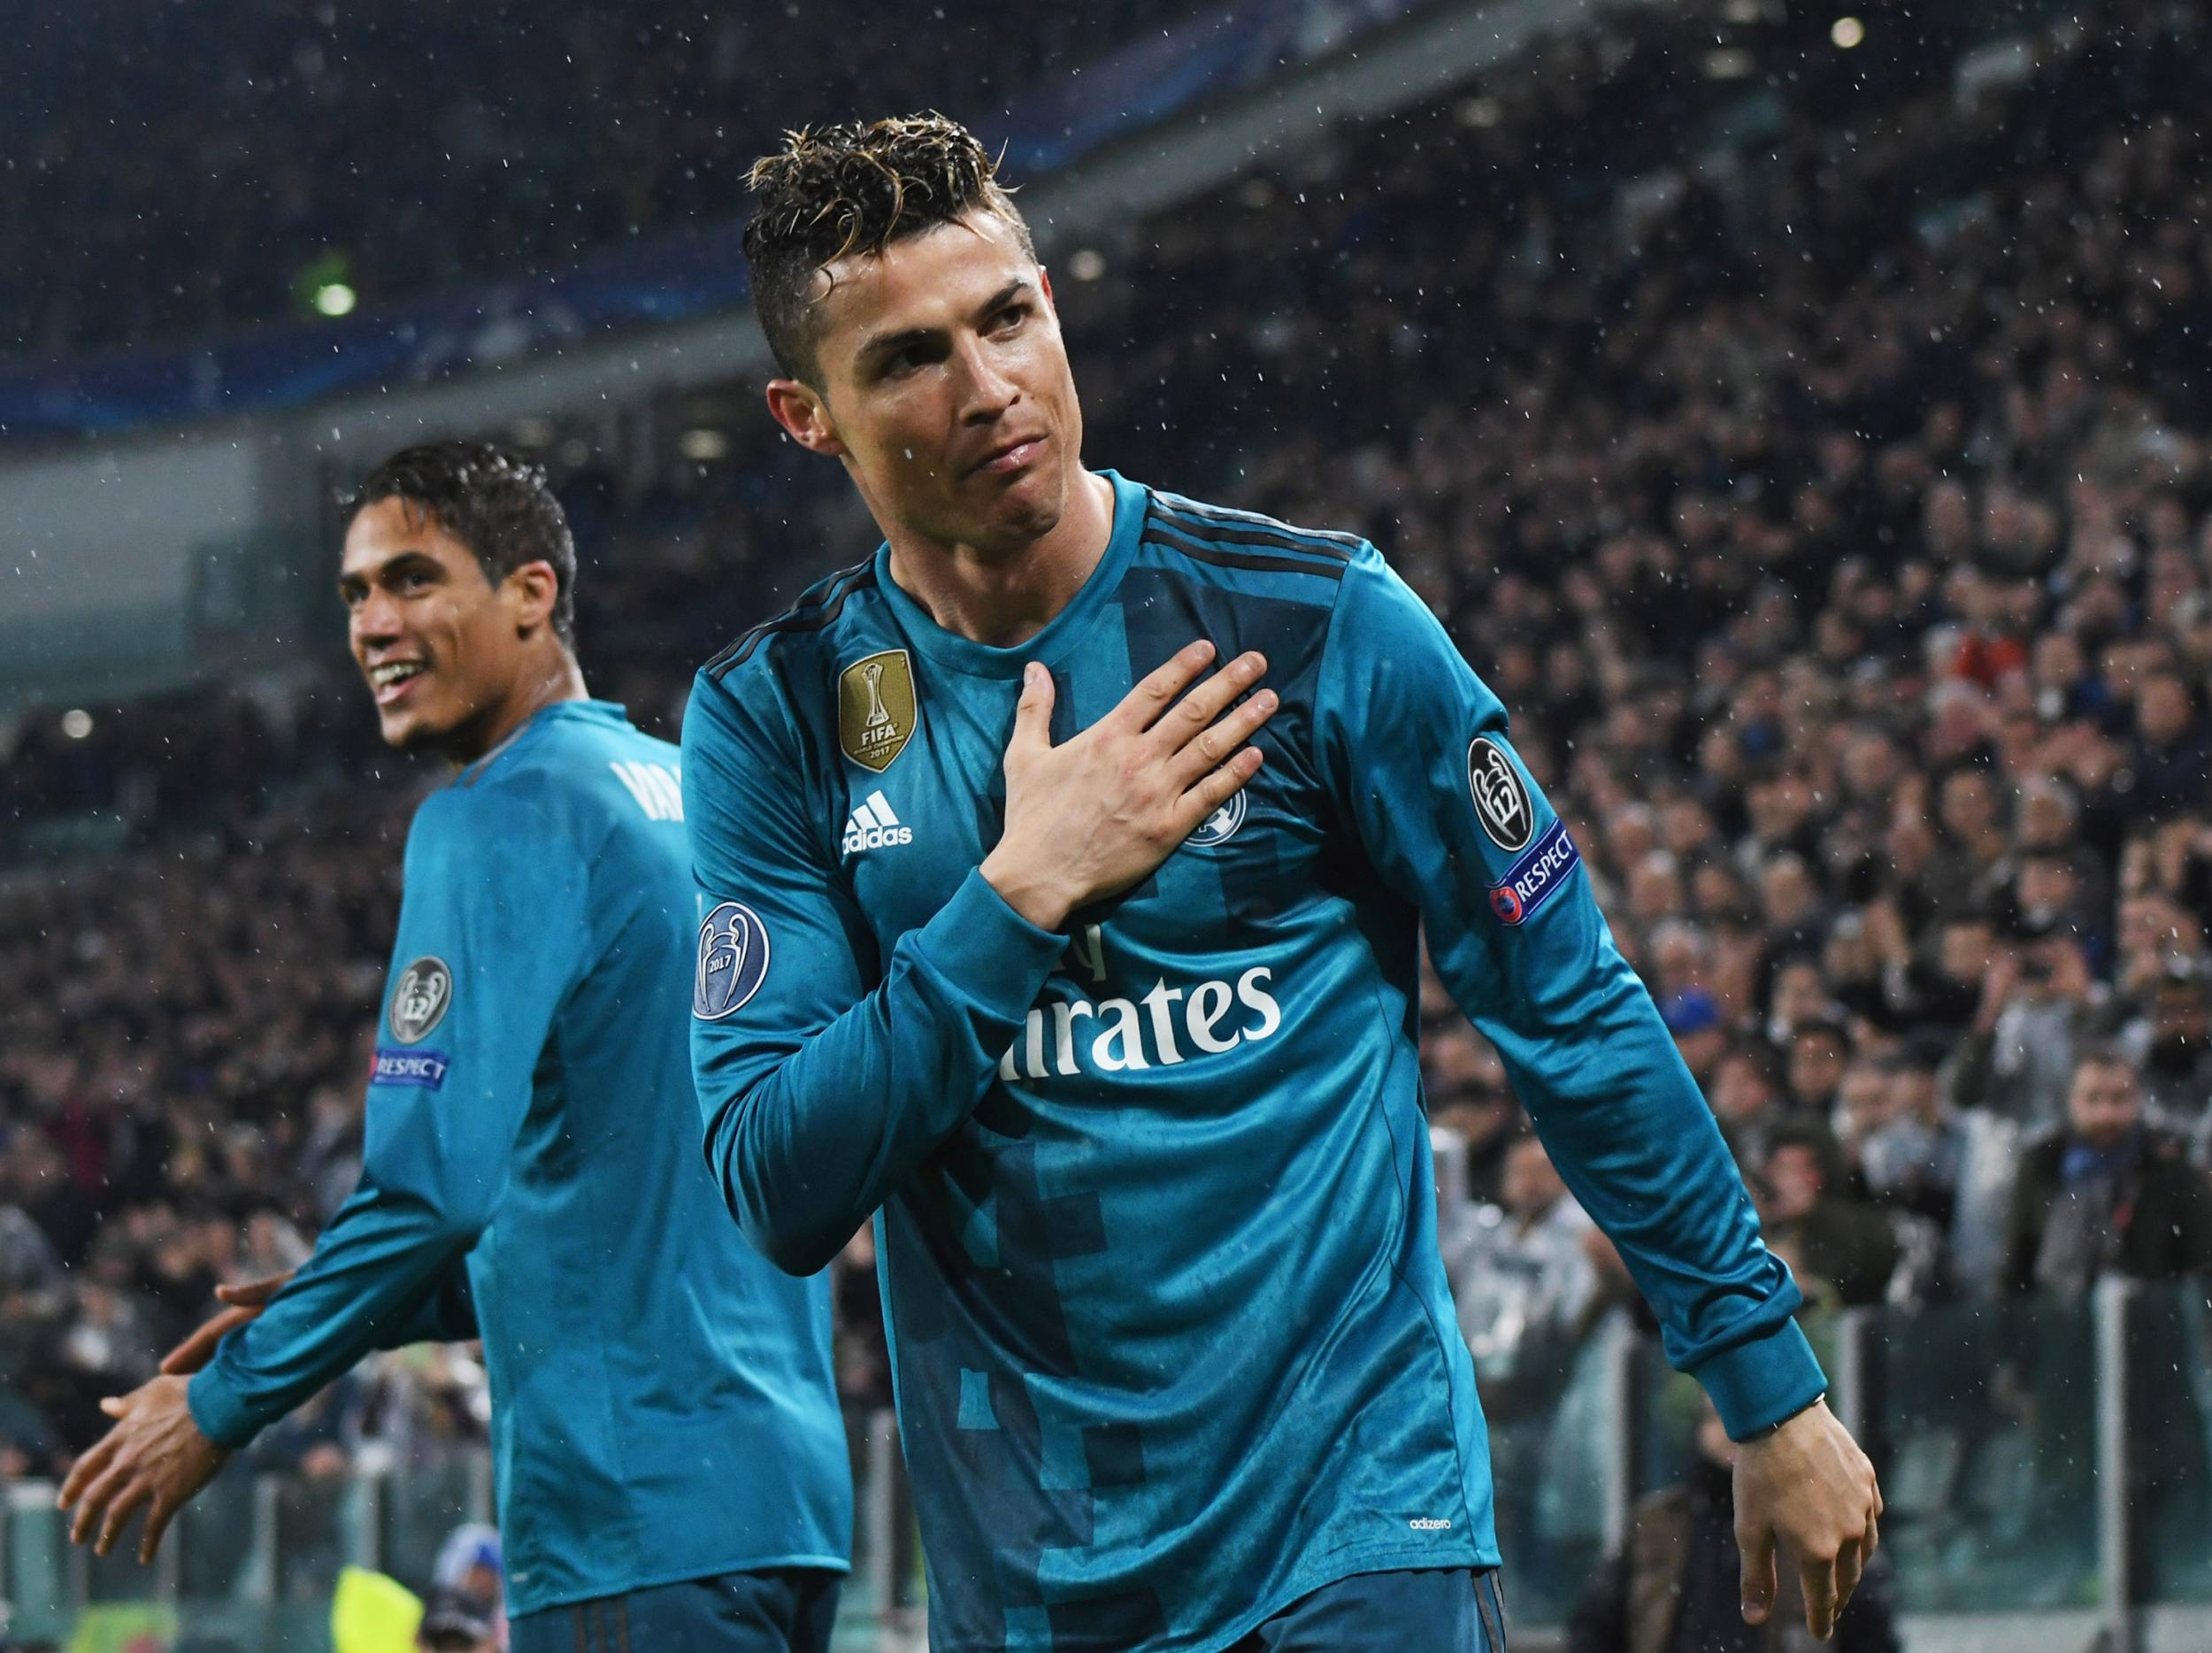 97ceb0cad Image result for cristiano ronaldo getting a standing ovation from juventus  fans